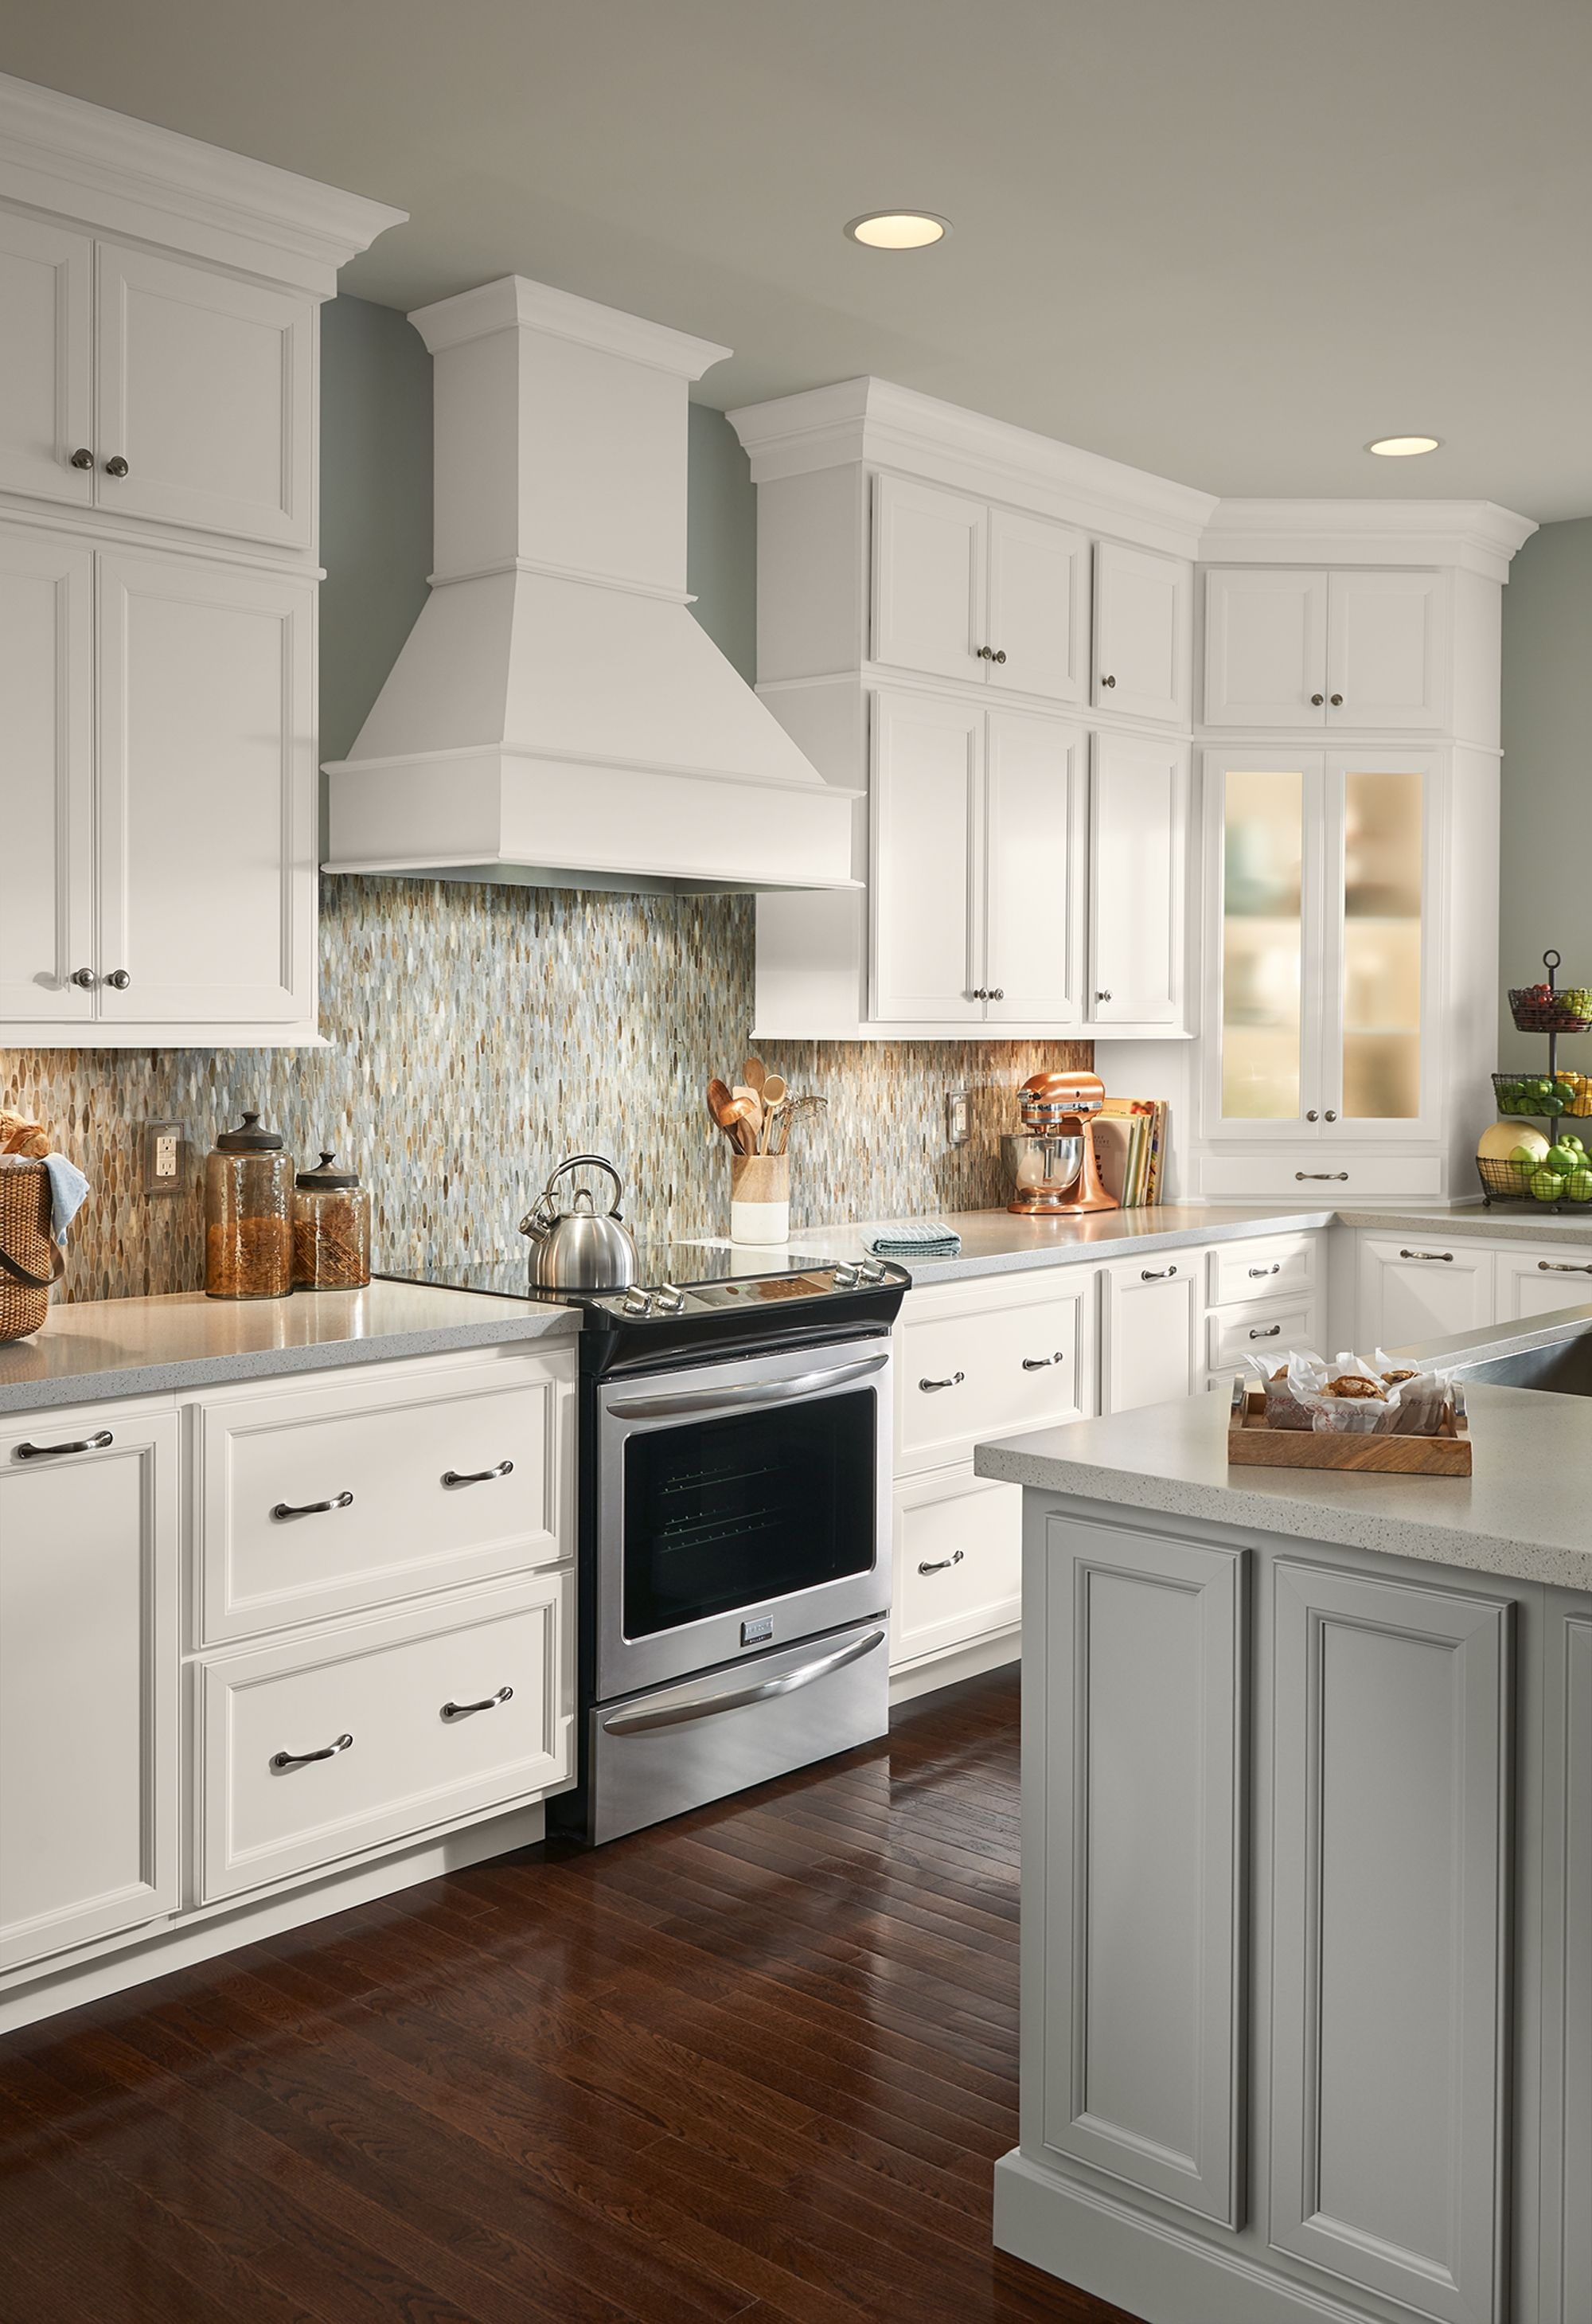 Wood American Woodmark Cabinets Be Better Than Ikea Home Depot Kitchen Remodel Home Depot Kitchen Kitchen Remodel Cost